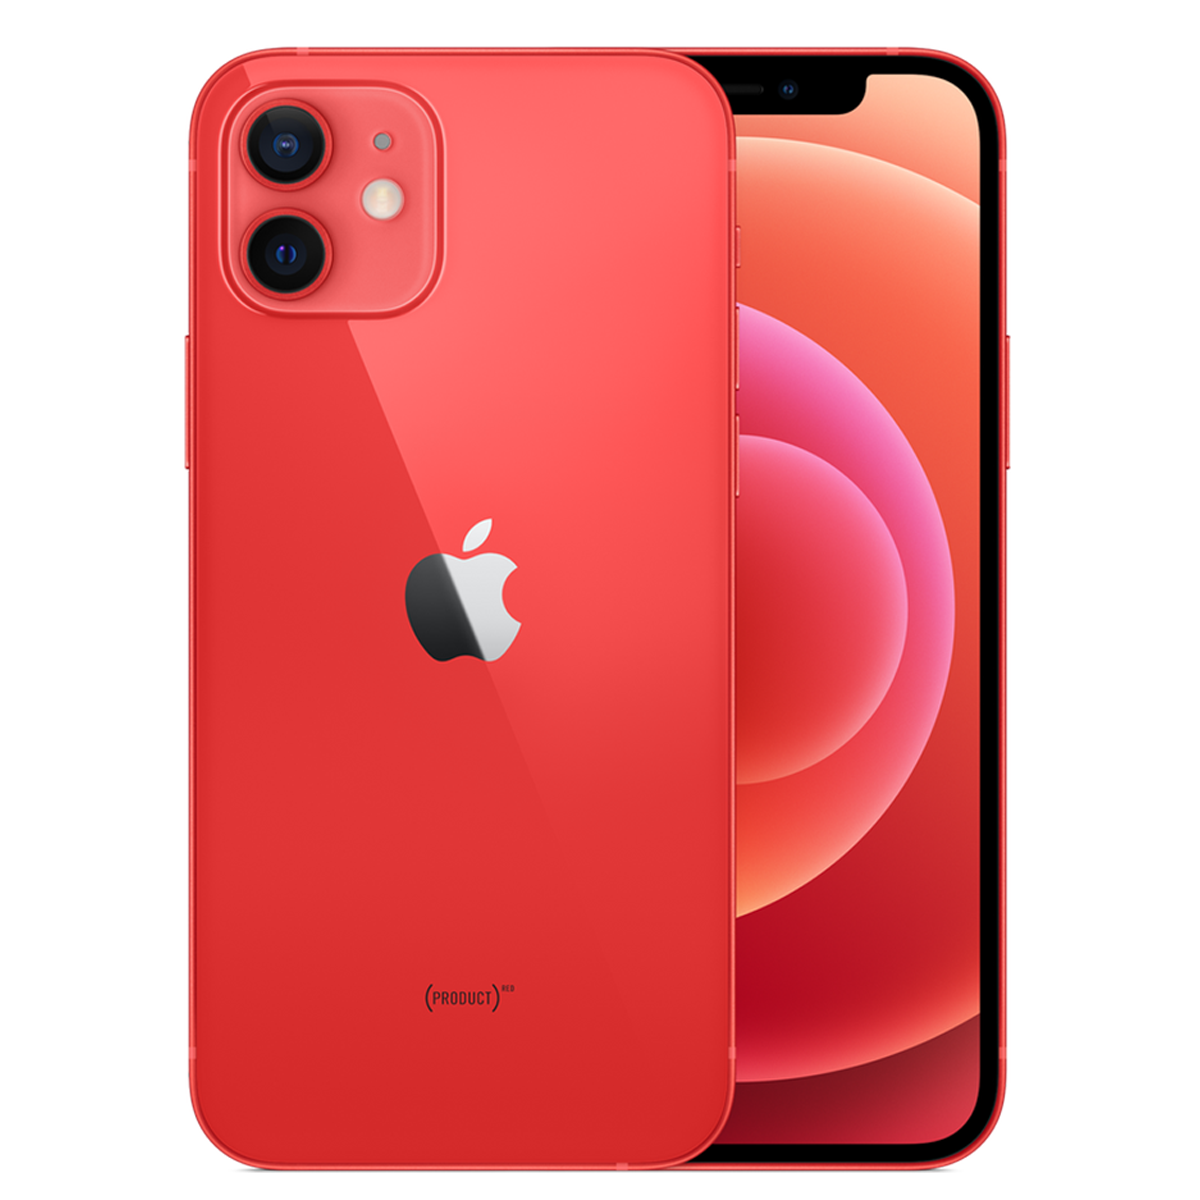 iPhone 12, (PRODUCT)Red, 256GB